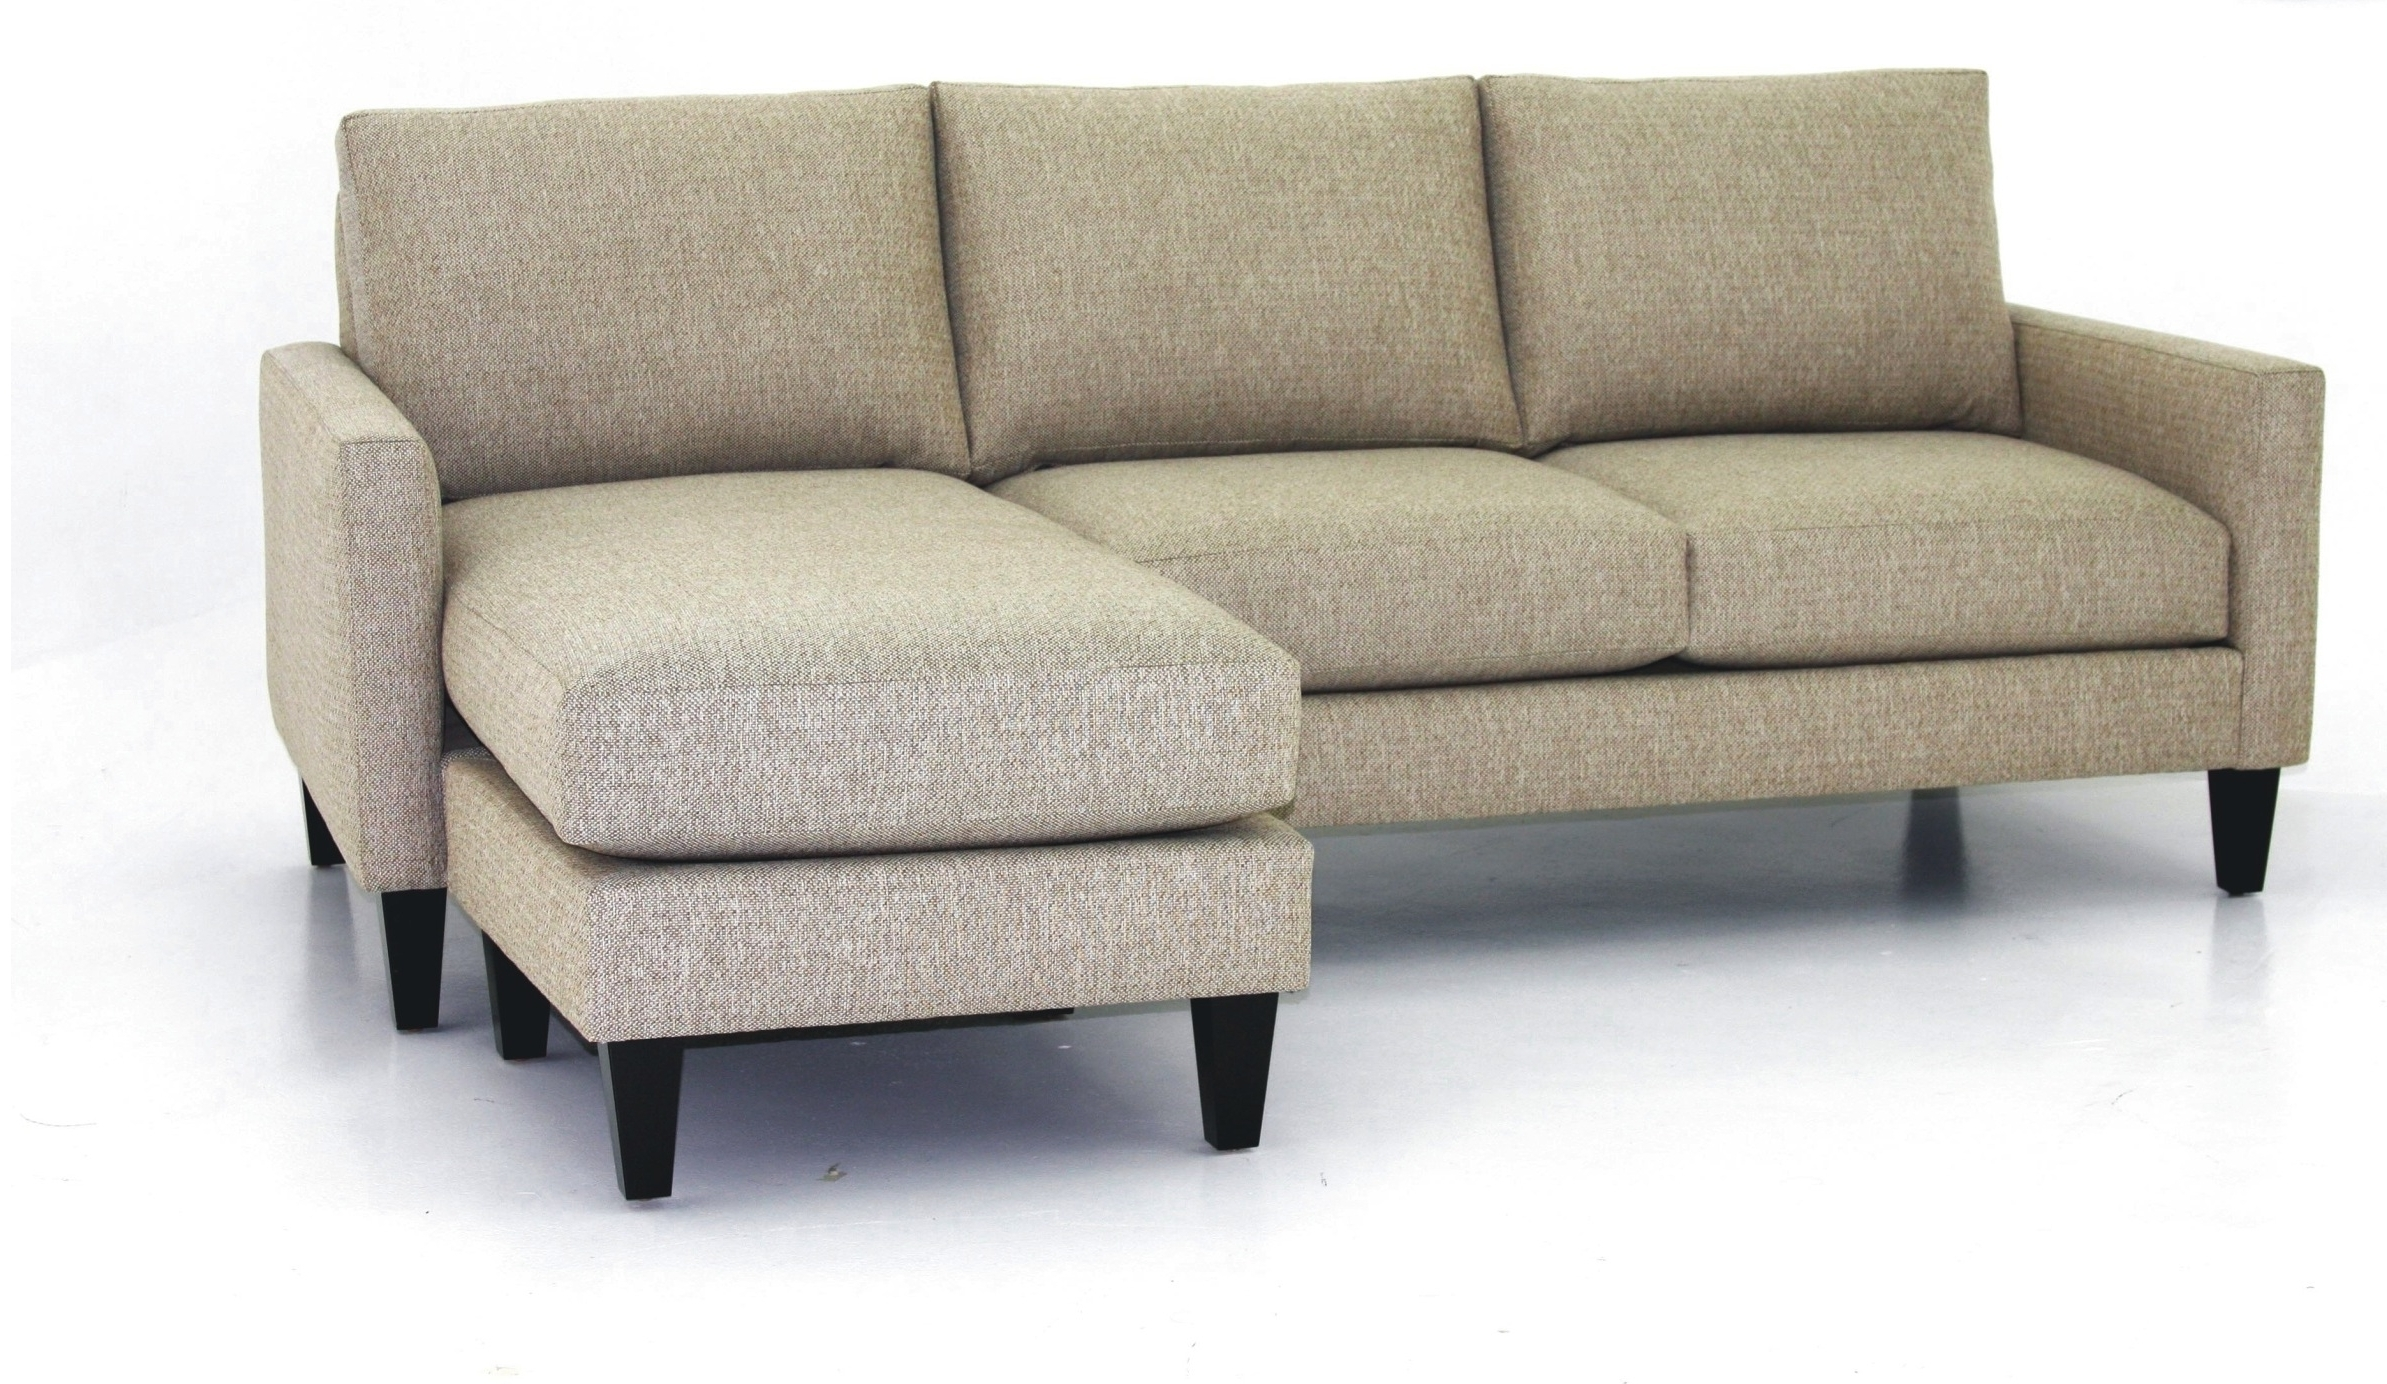 Popular Designers Furniture Glendale Christian Convertible Sofa Chaise Regarding Convertible Chaises (View 4 of 15)